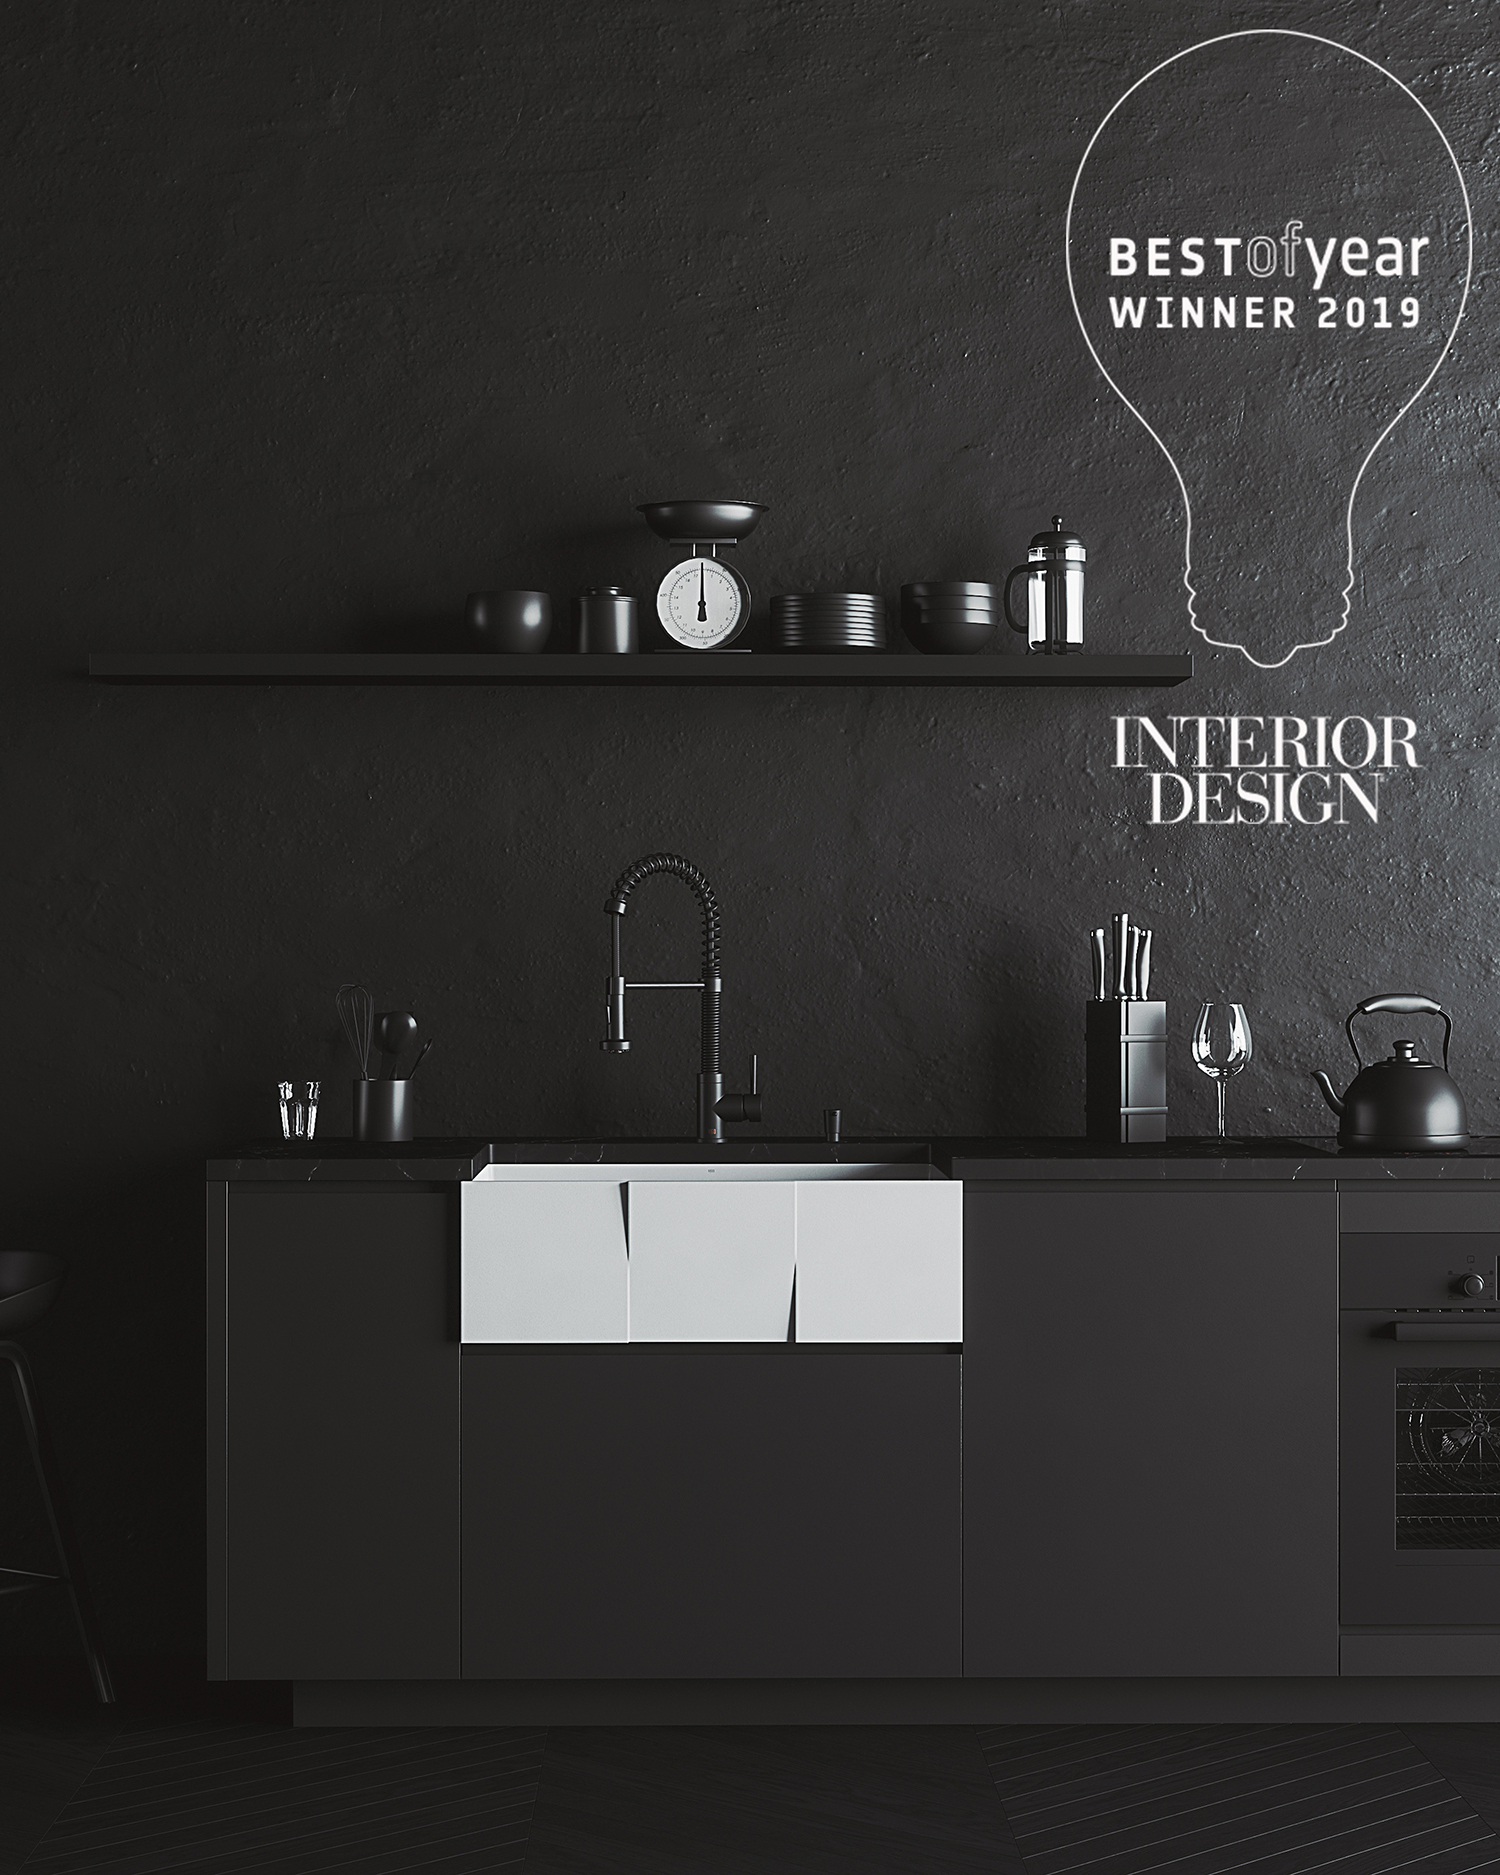 Vigo Matte Stone Farmhouse Kitchen Sink Collection Wins Interior Design Award